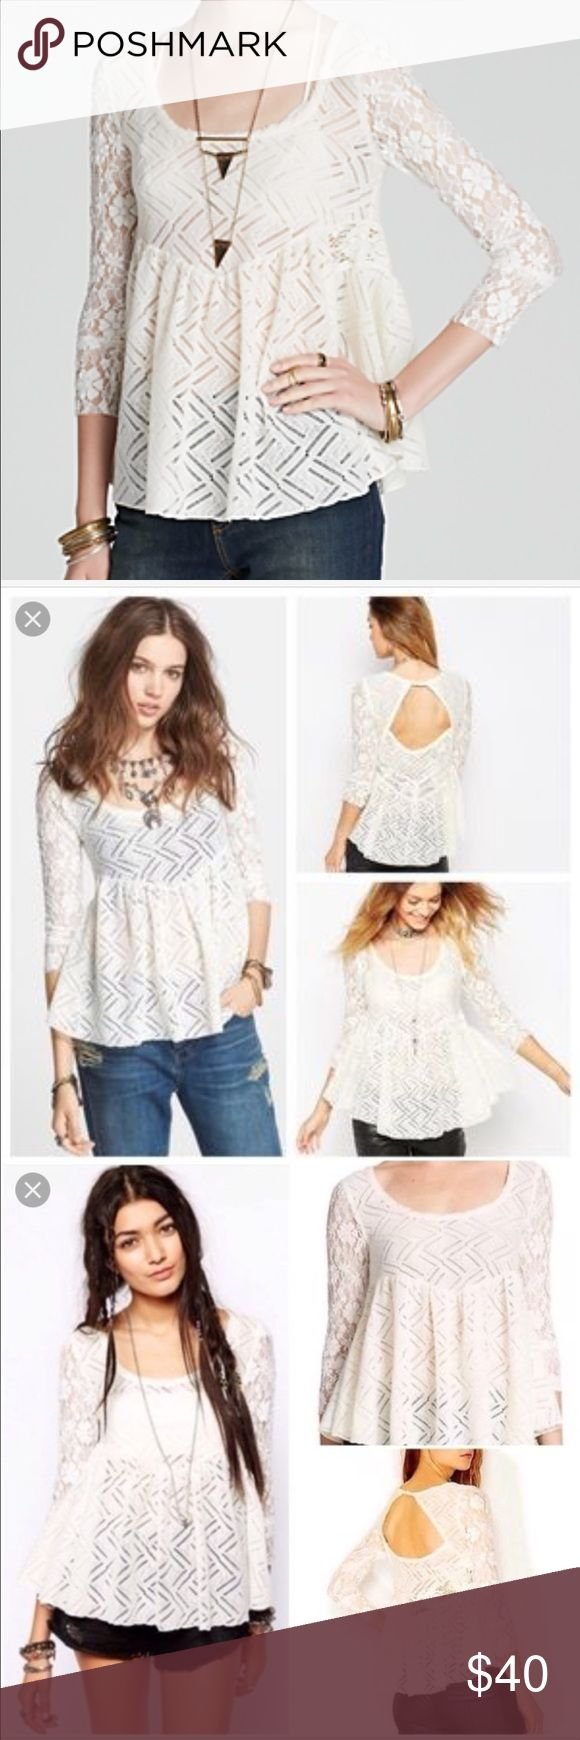 Free People Gracie Lace Peplum Top Super cute! Worn once or twice Free People Tops